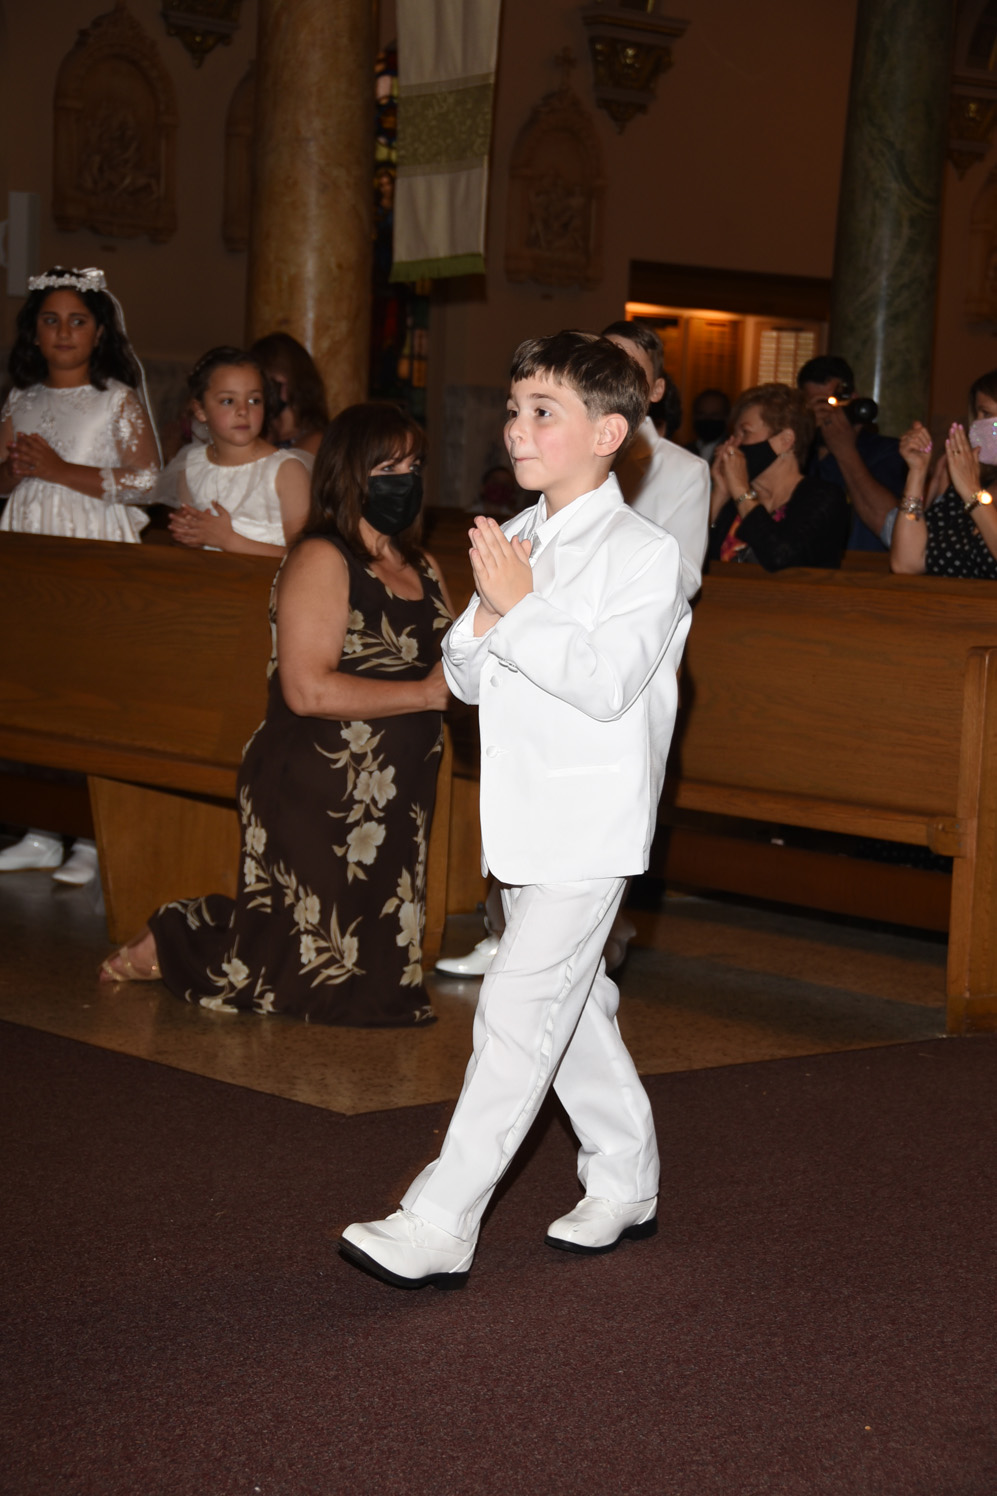 FIRST-COMMUNION-MAY-2-2021-1001001245